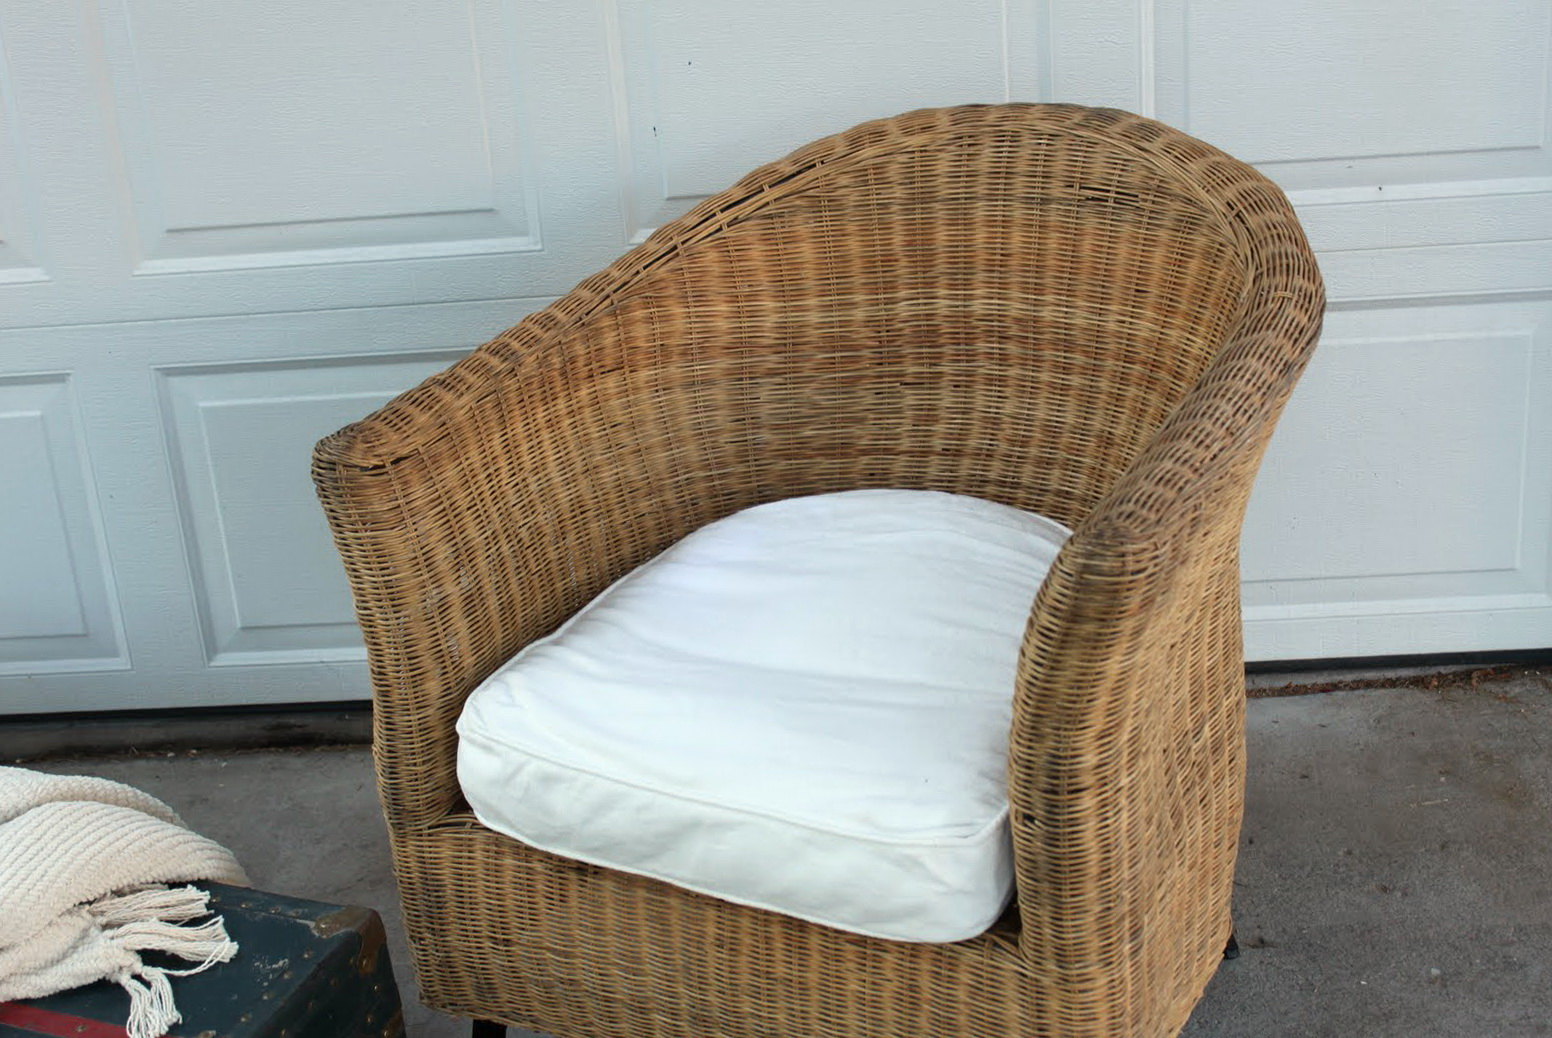 Wicker Furniture Replacement Cushions Walmart Home Design Ideas